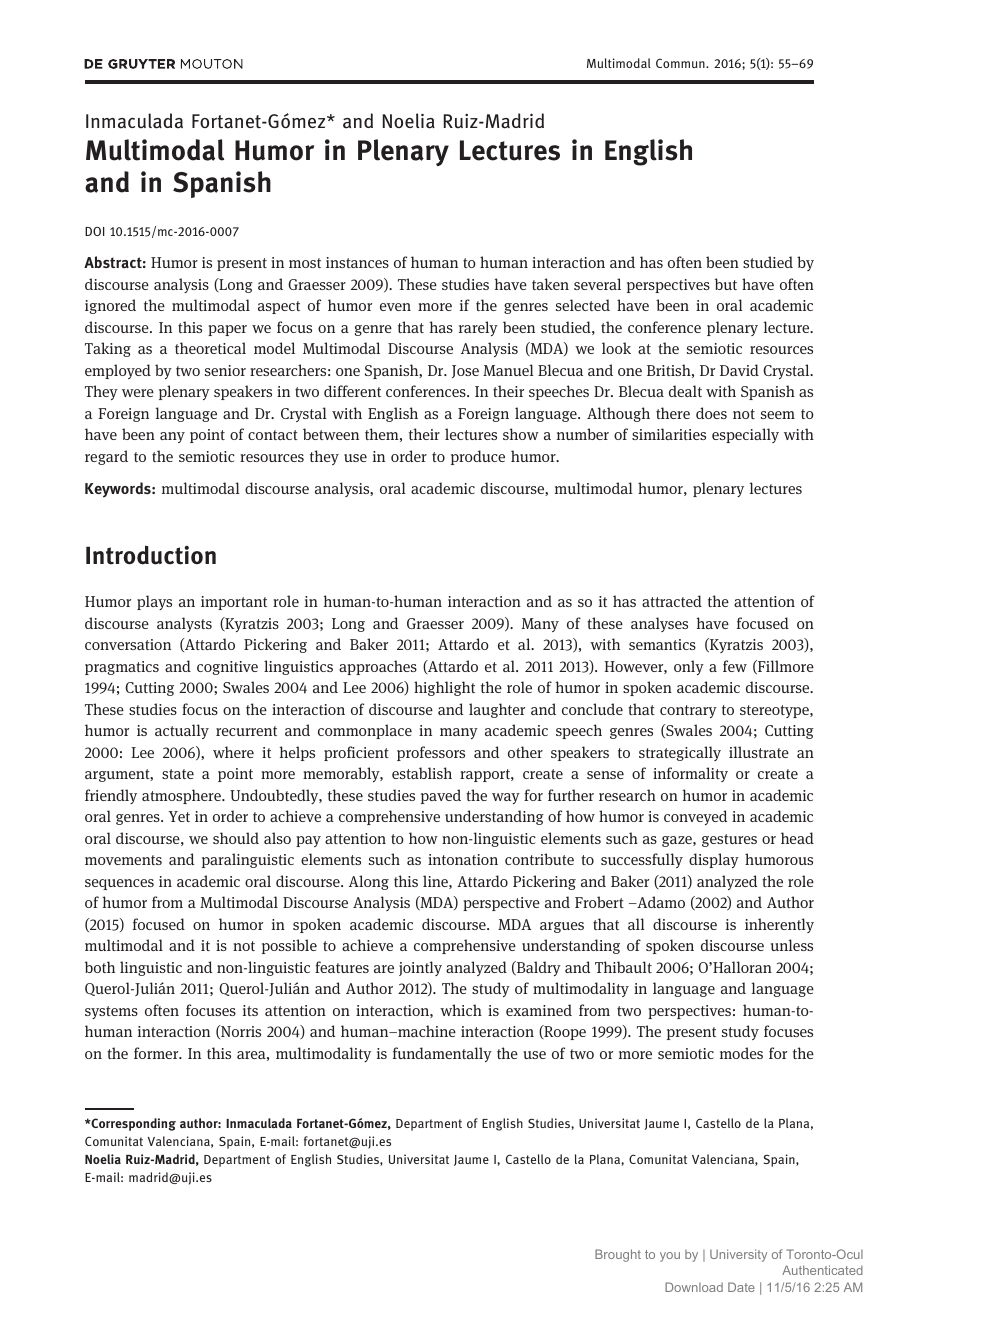 english pronunciation for speakers of spanish from theory to practice mouton textbook